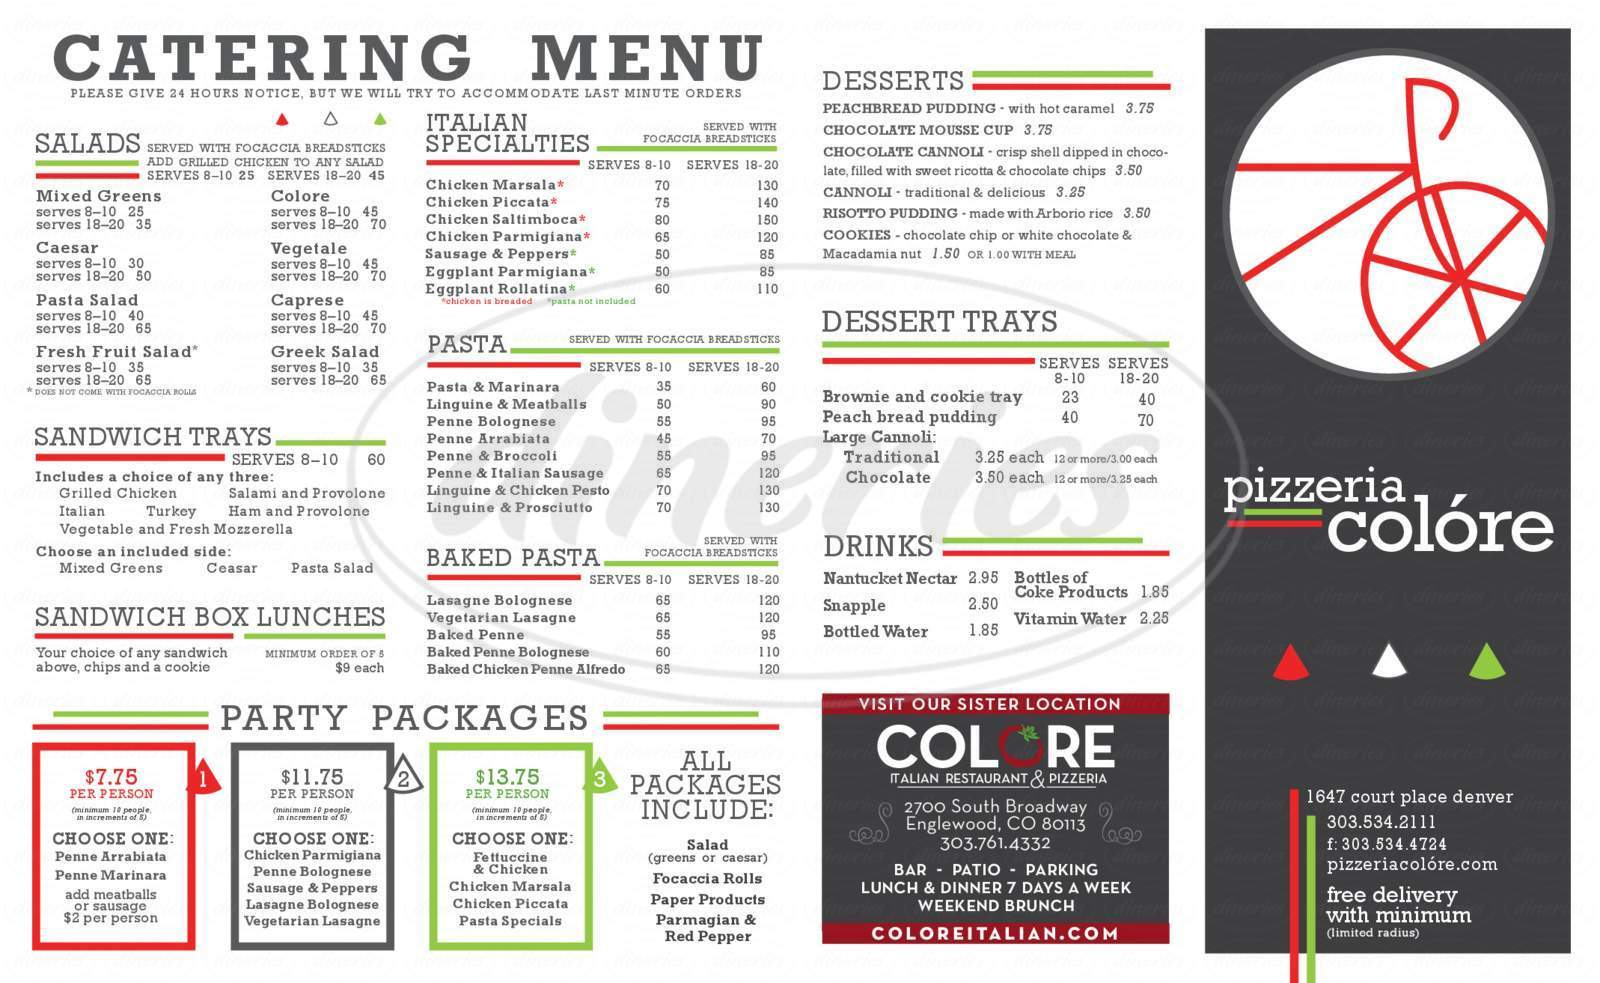 menu for Pizzeria Colore